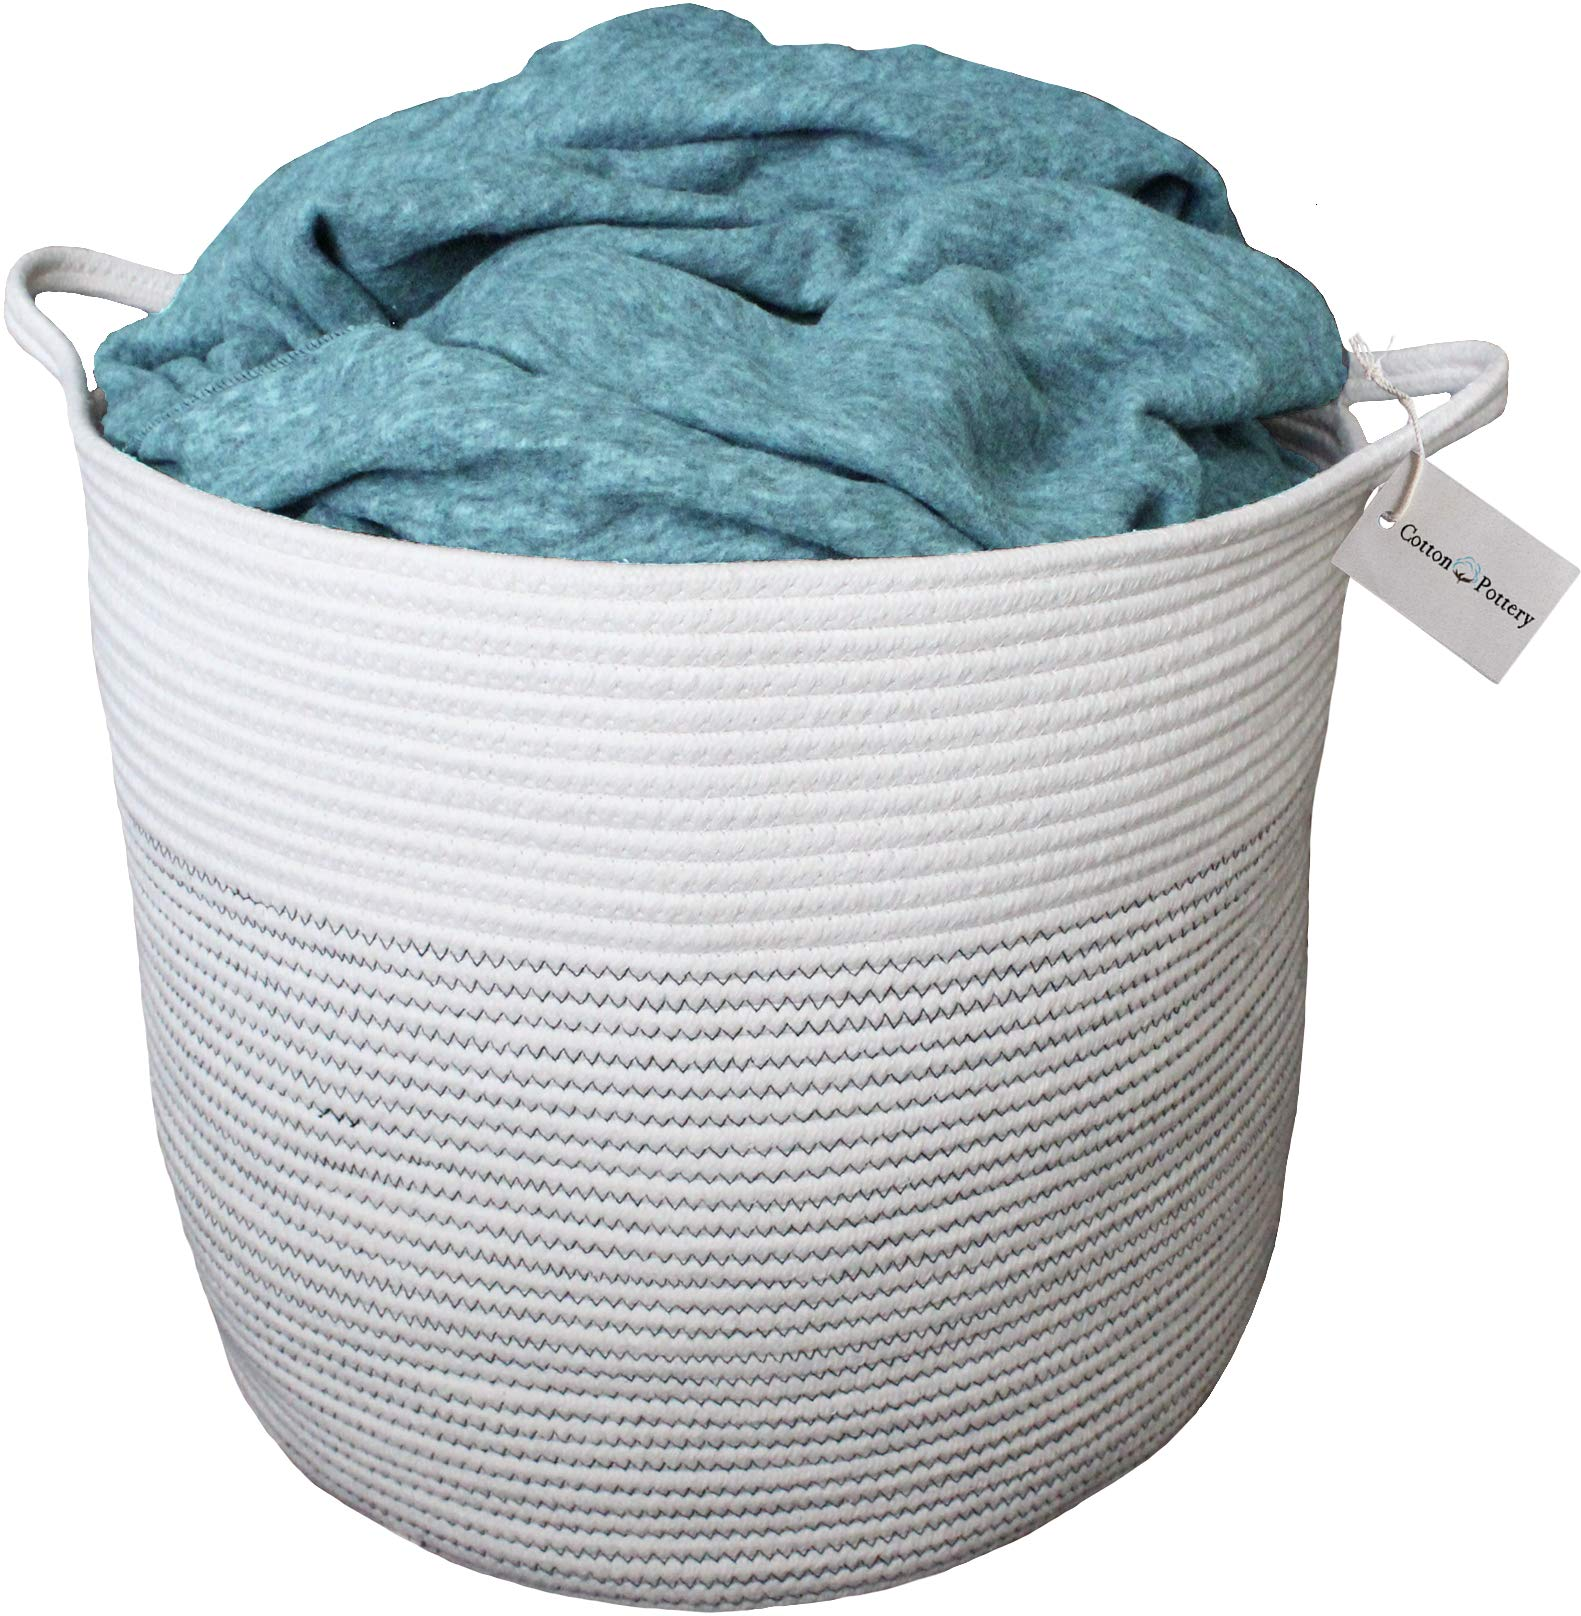 """Cotton Pottery Extra Large Woven Blanket Basket 15"""" X 17"""" Decorative Cotton Rope Storage Basket 